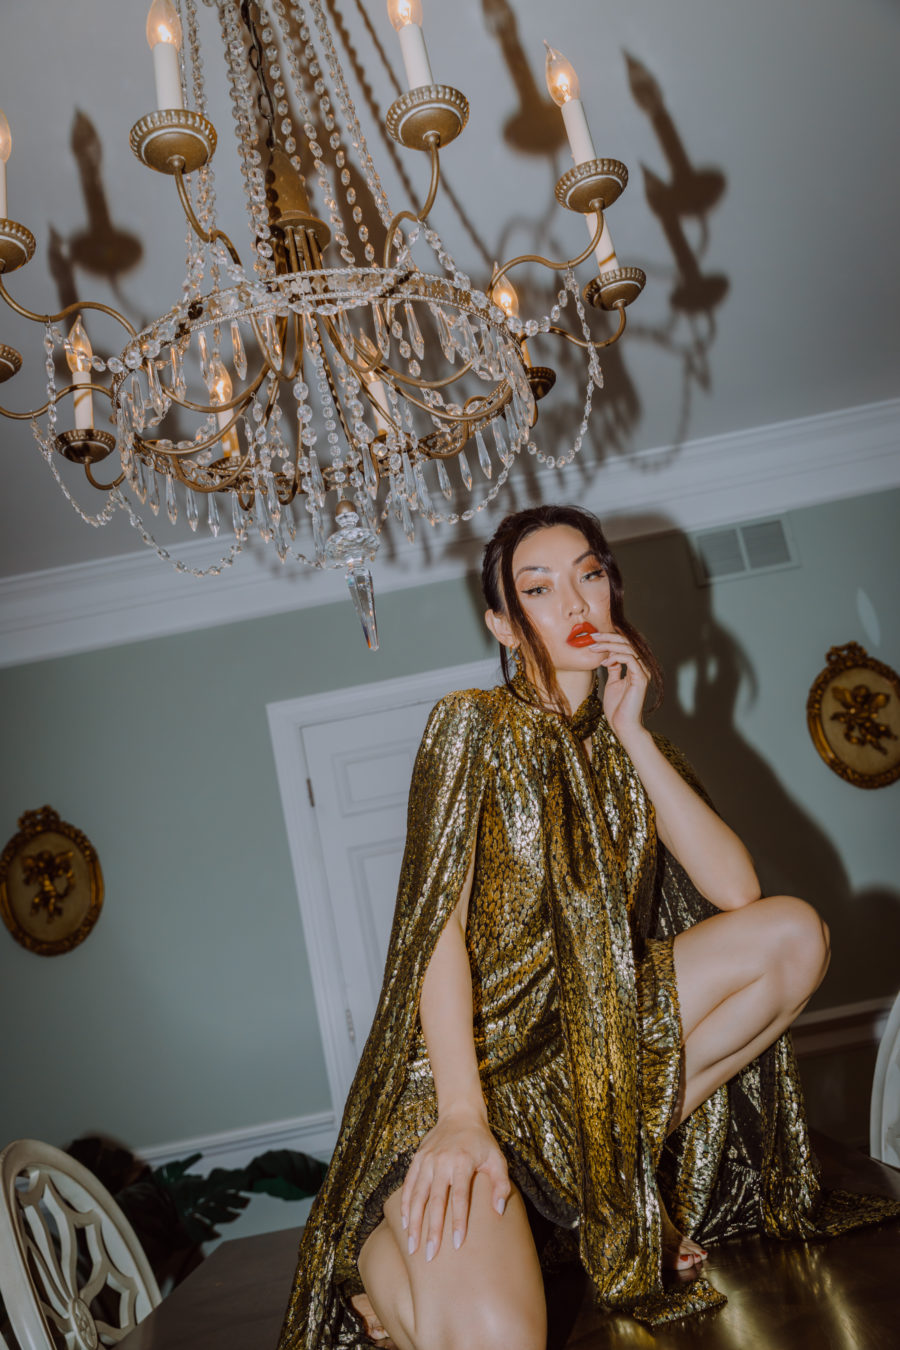 jessica wang wearing a gold dress at home sharing cyber monday deals for 2020 // jessica wang - Notjessfashion.com